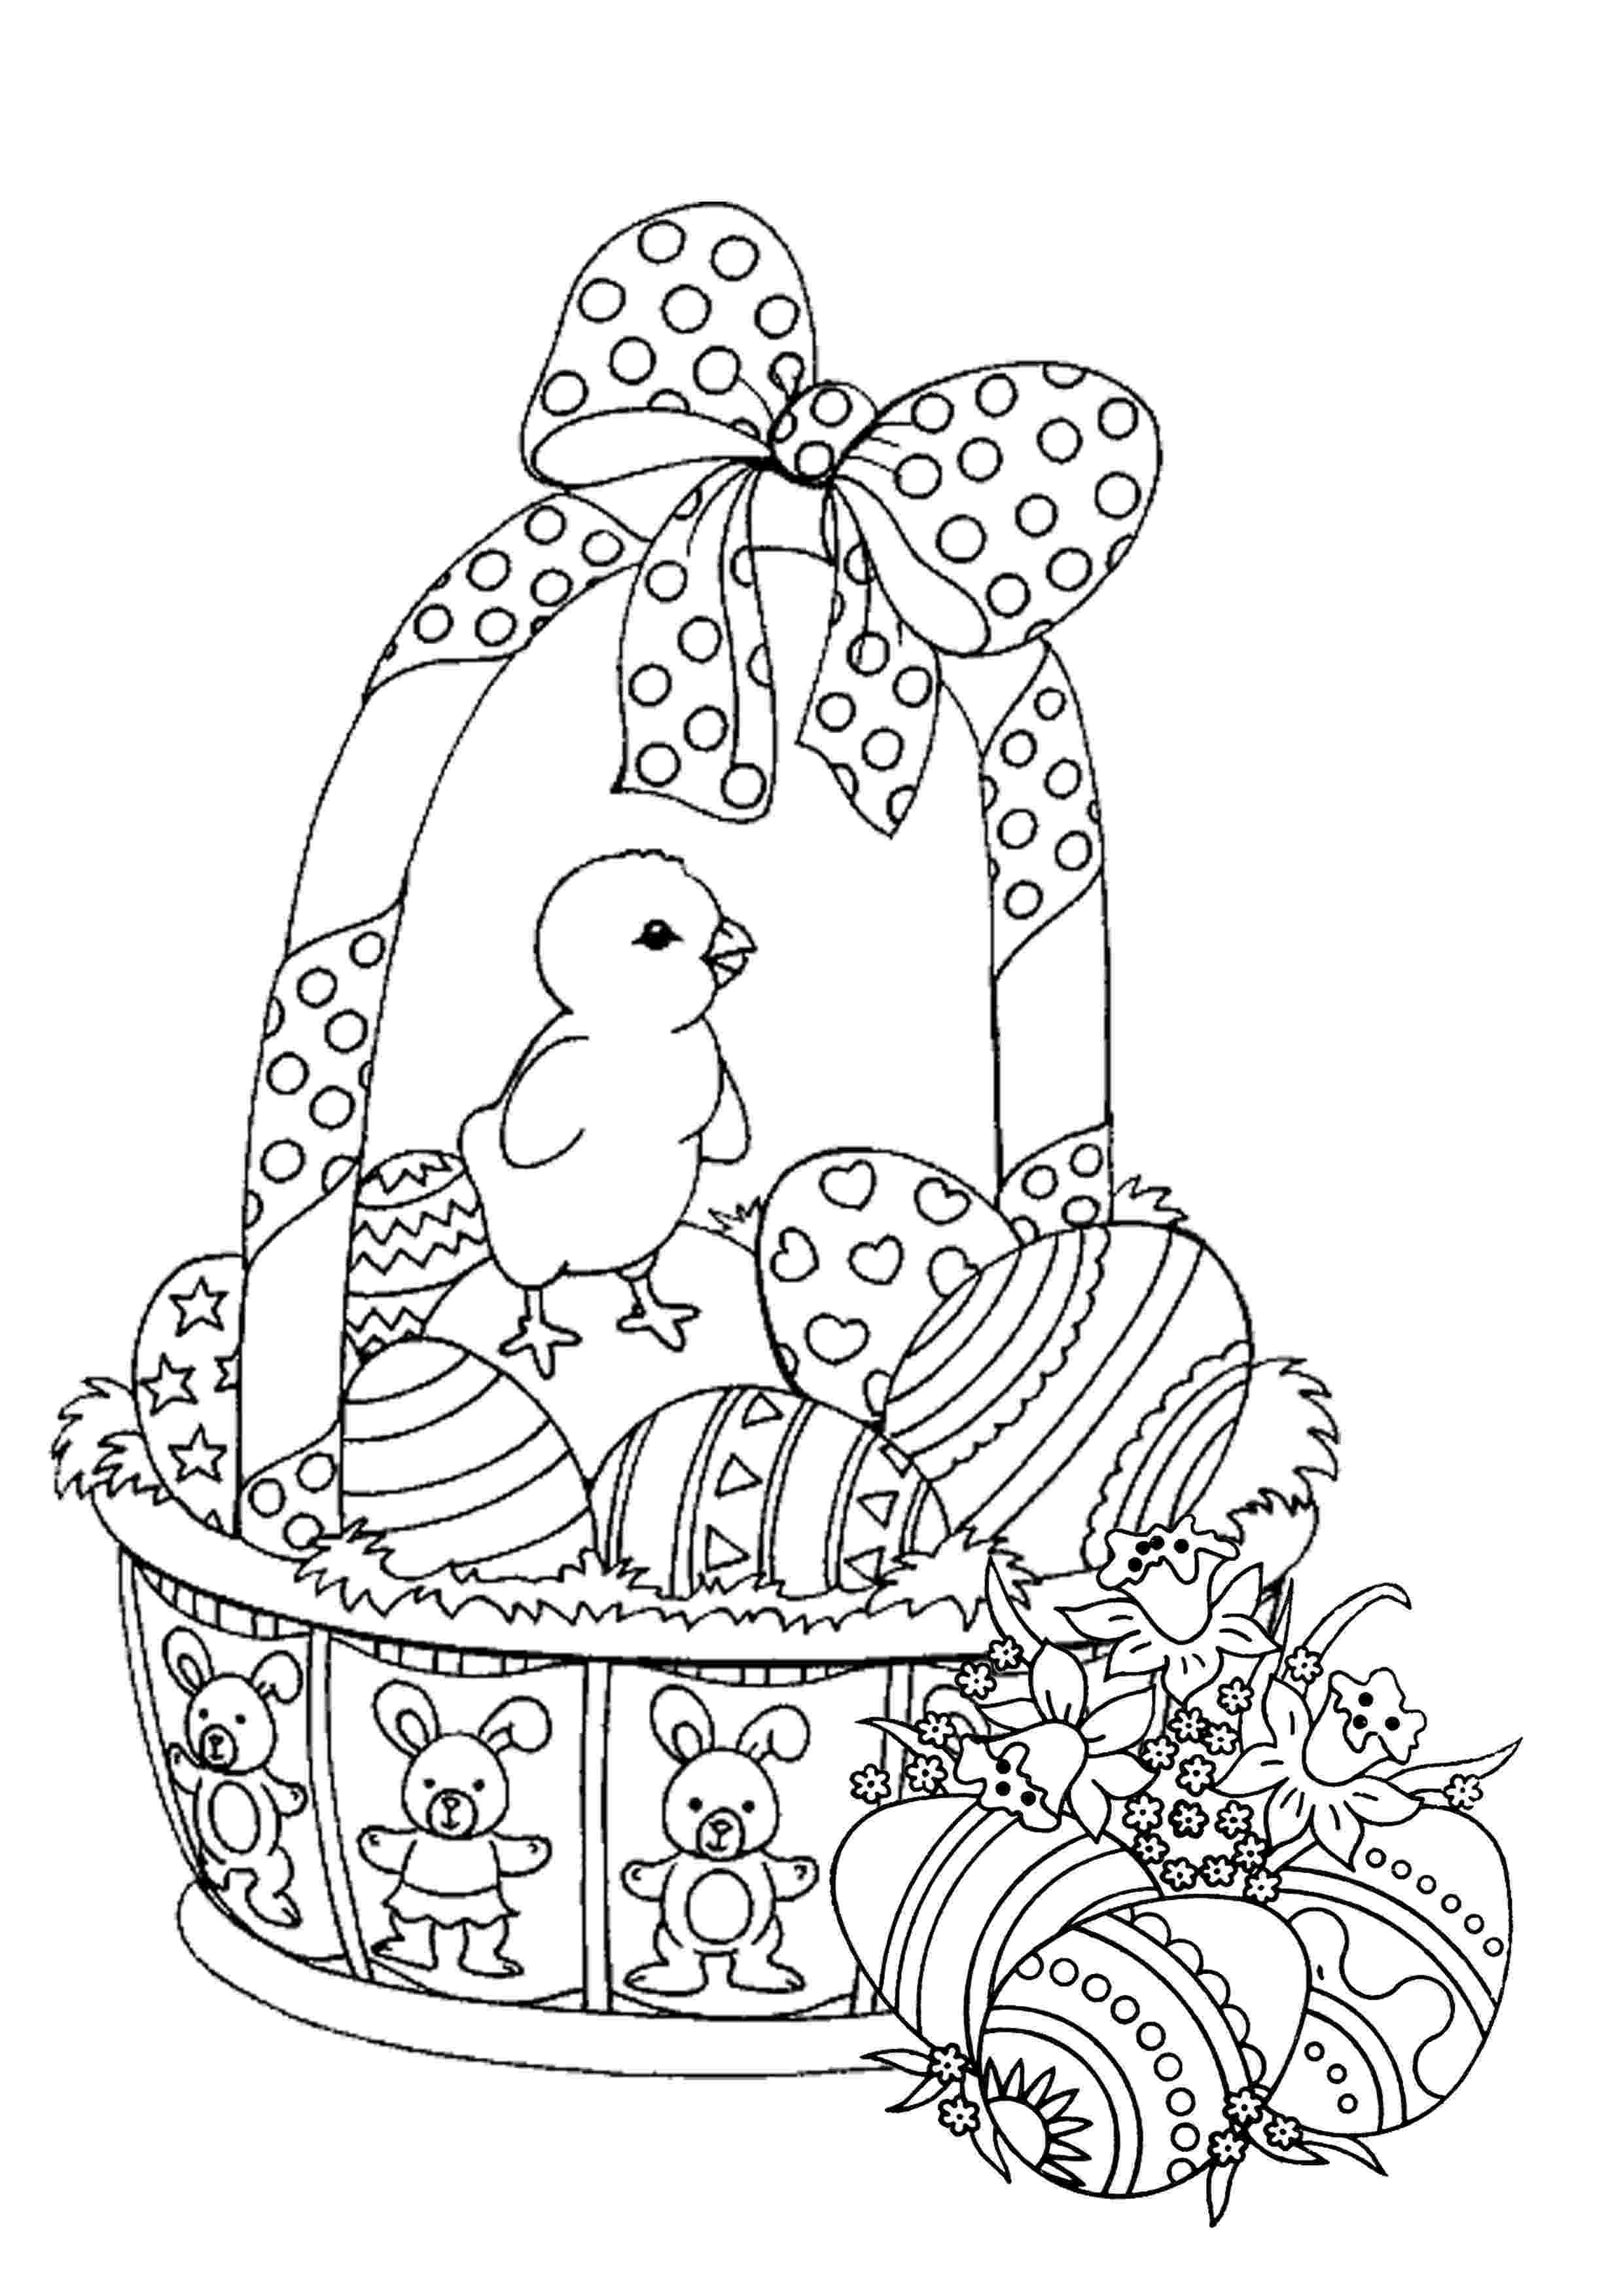 easter coloring sheets free printable easter bunny coloring pages 360coloringpages free sheets coloring easter printable